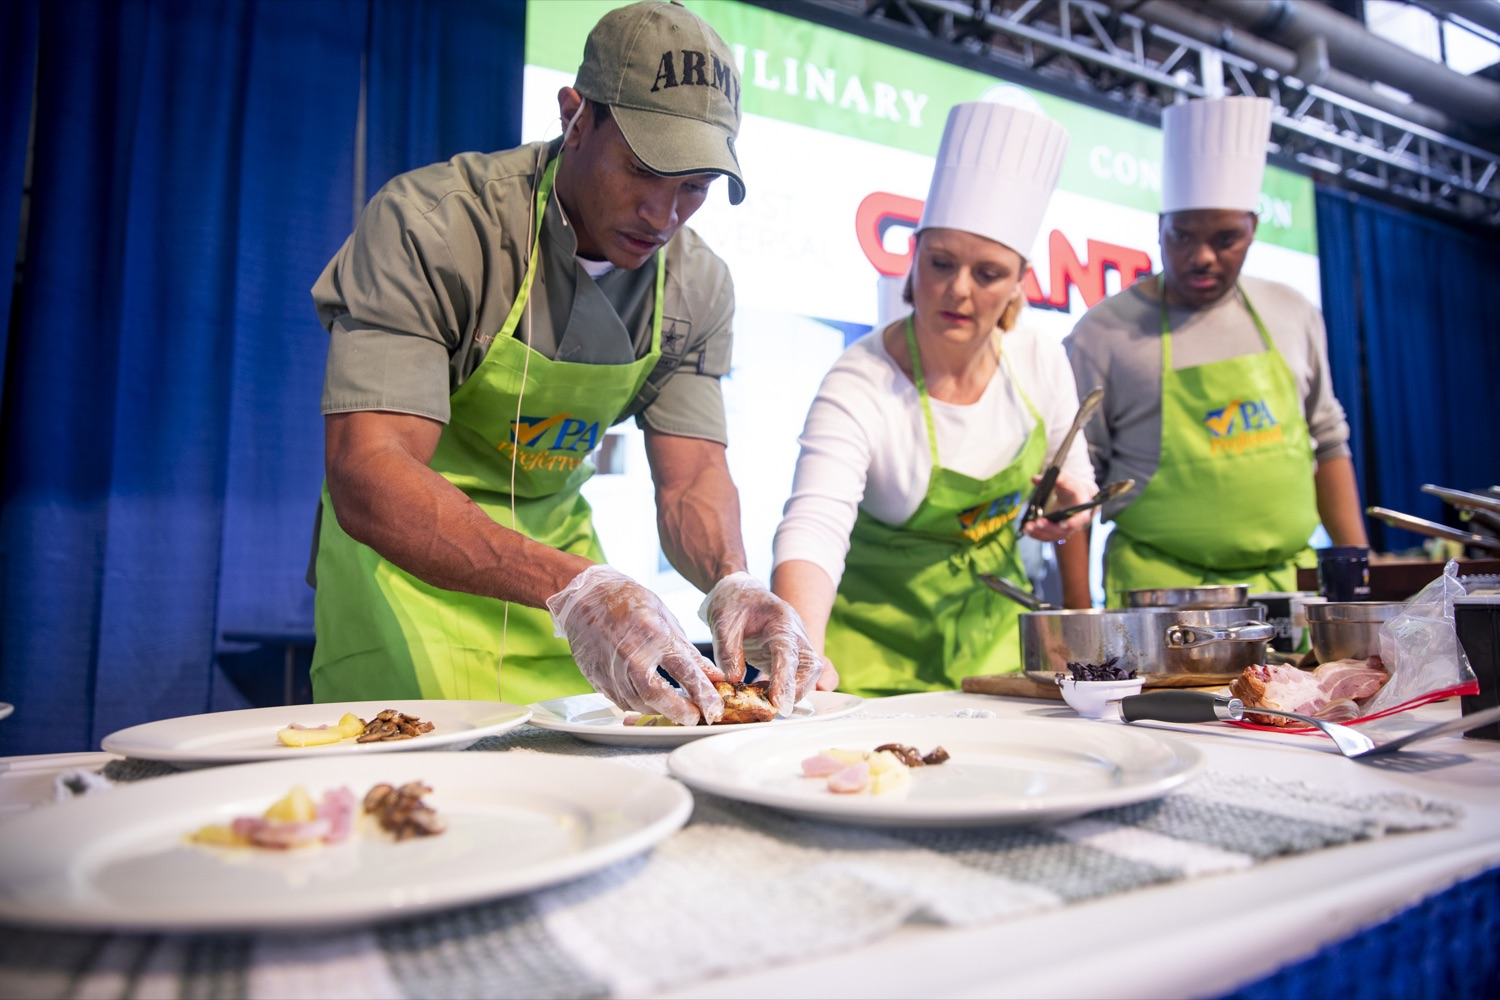 """<a href=""""http://filesource.abacast.com/commonwealthofpa/photo/17651_AGRIC_ARMY_NAVY_COOKOFF_CZ_13.jpg"""" target=""""_blank"""">⇣Download Photo<br></a>Sergeant Pete O. Linton plates his dish with Sous Chefs Ali Lanyon and James Crumble of ABC27 News at the 2020 Army vs. Navy Cook-Off in Harrisburg on January 9, 2020."""